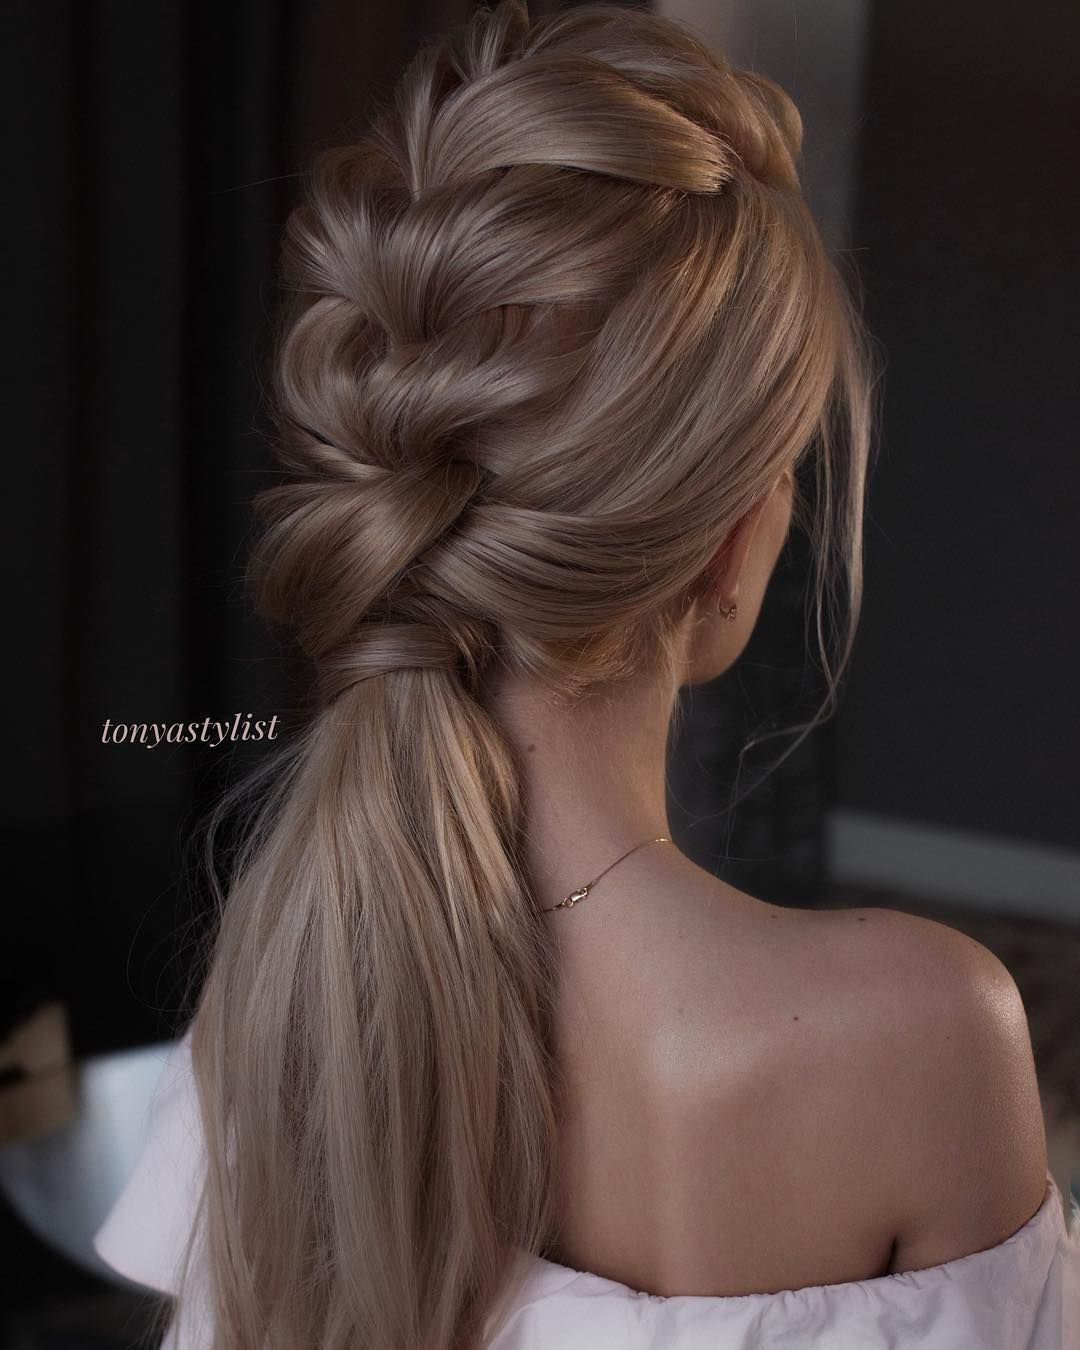 Ponytail hairstyles weddinghair ponytails wedding hairstyles